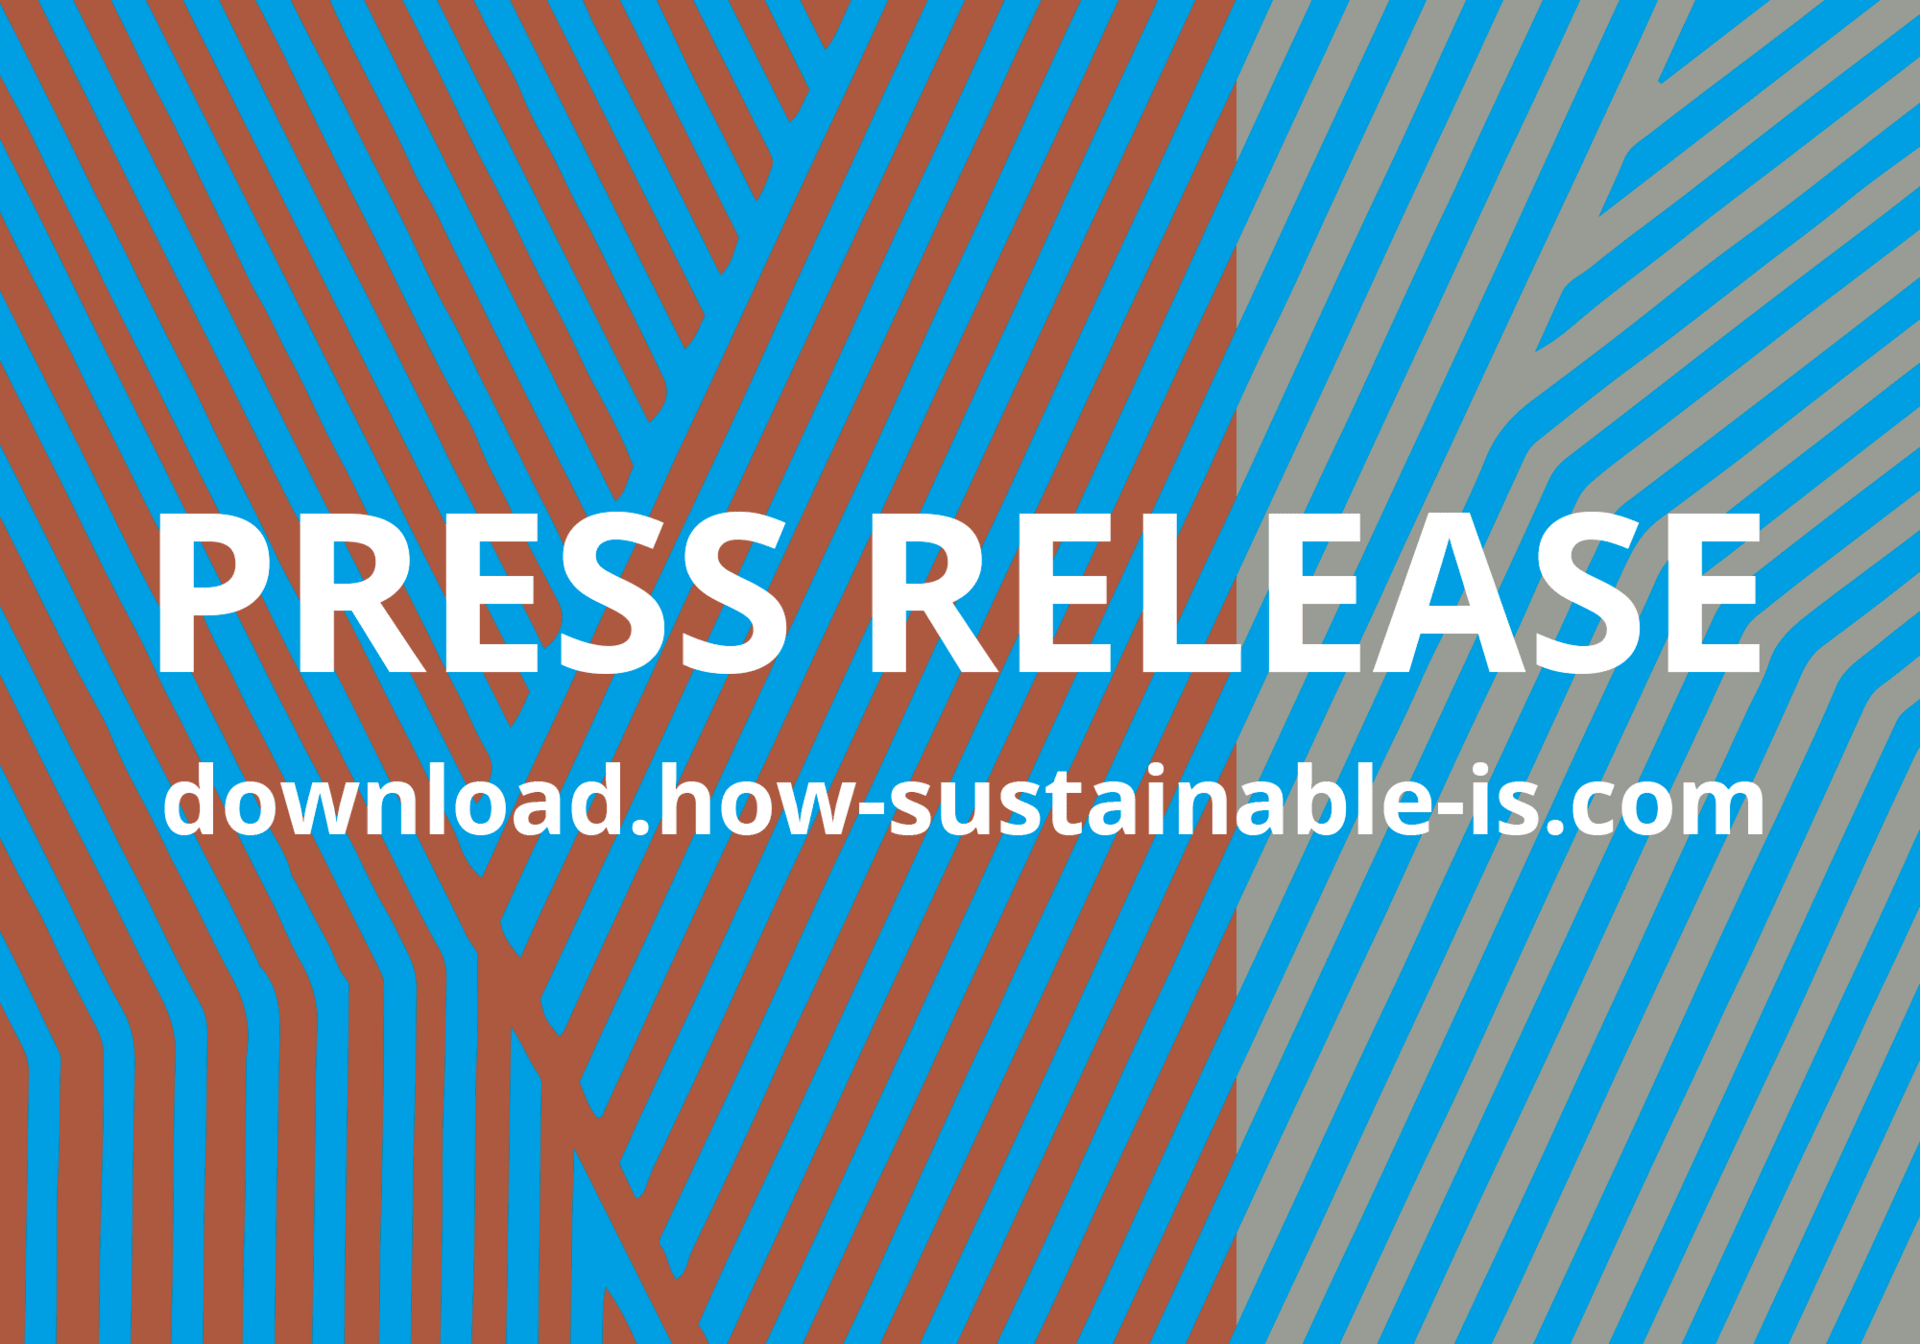 Find press information about my projects and motives at how-sustainable-is.com